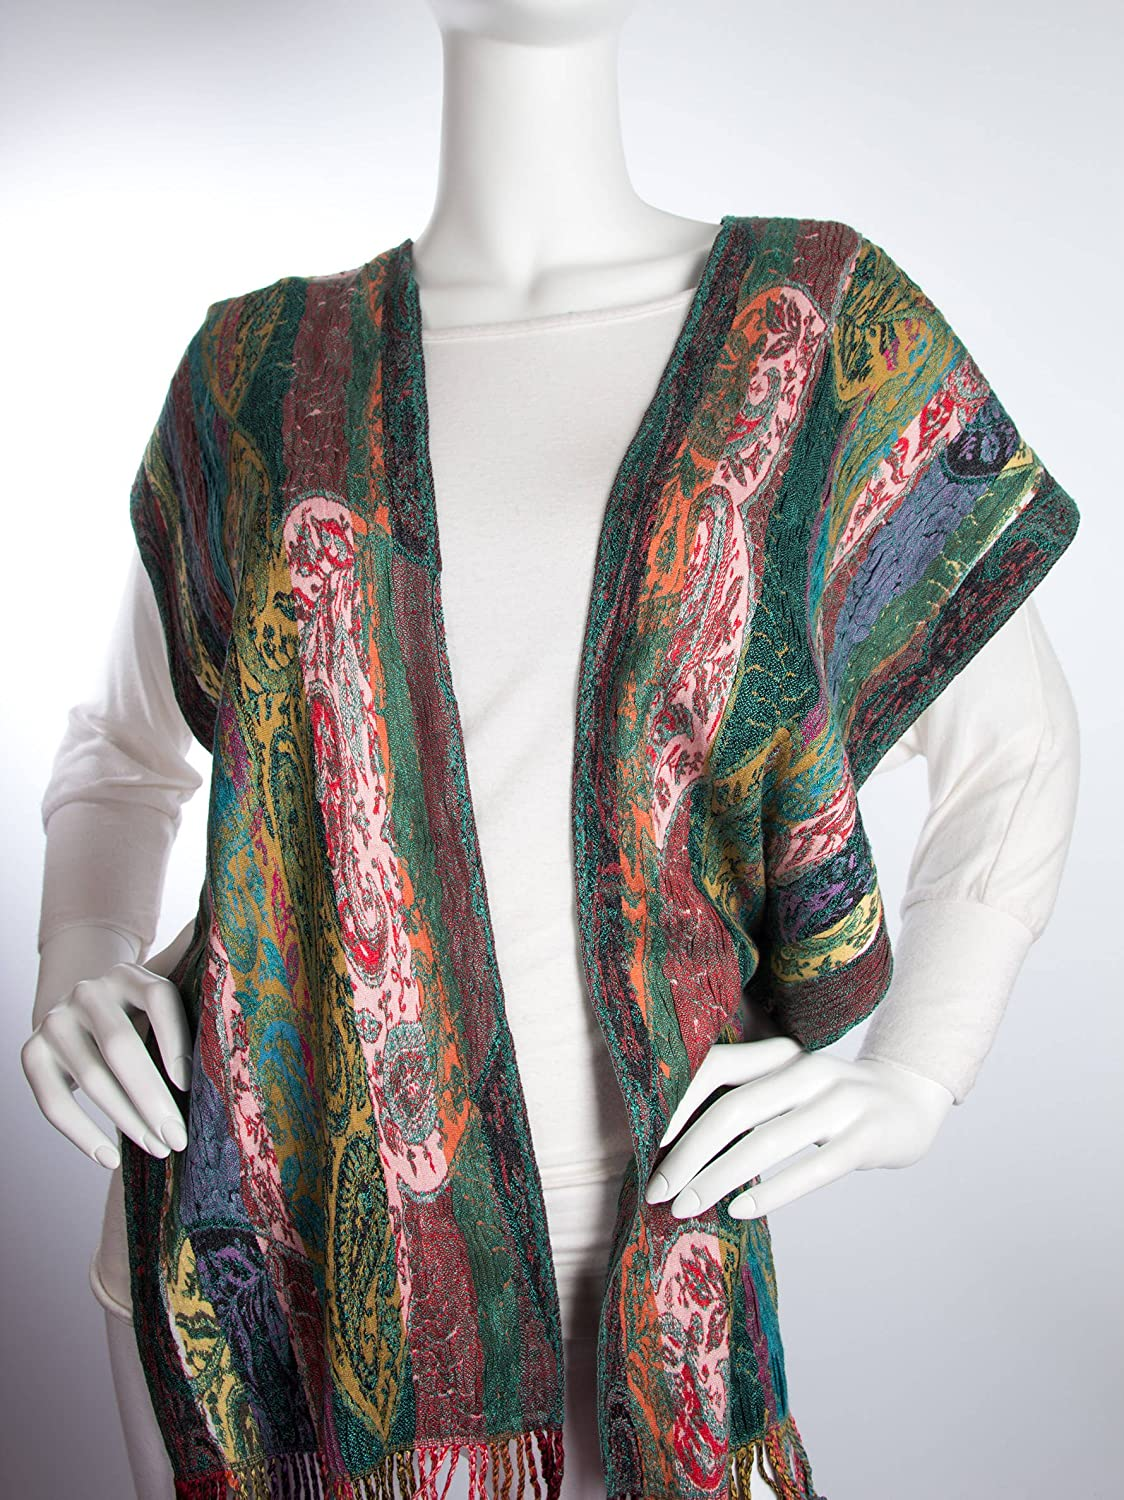 70s Jackets, Furs, Vests, Ponchos Bohomonde Elina Scarf Striped Woven Paisley Pashmina Scarf Hand Made in India $26.95 AT vintagedancer.com